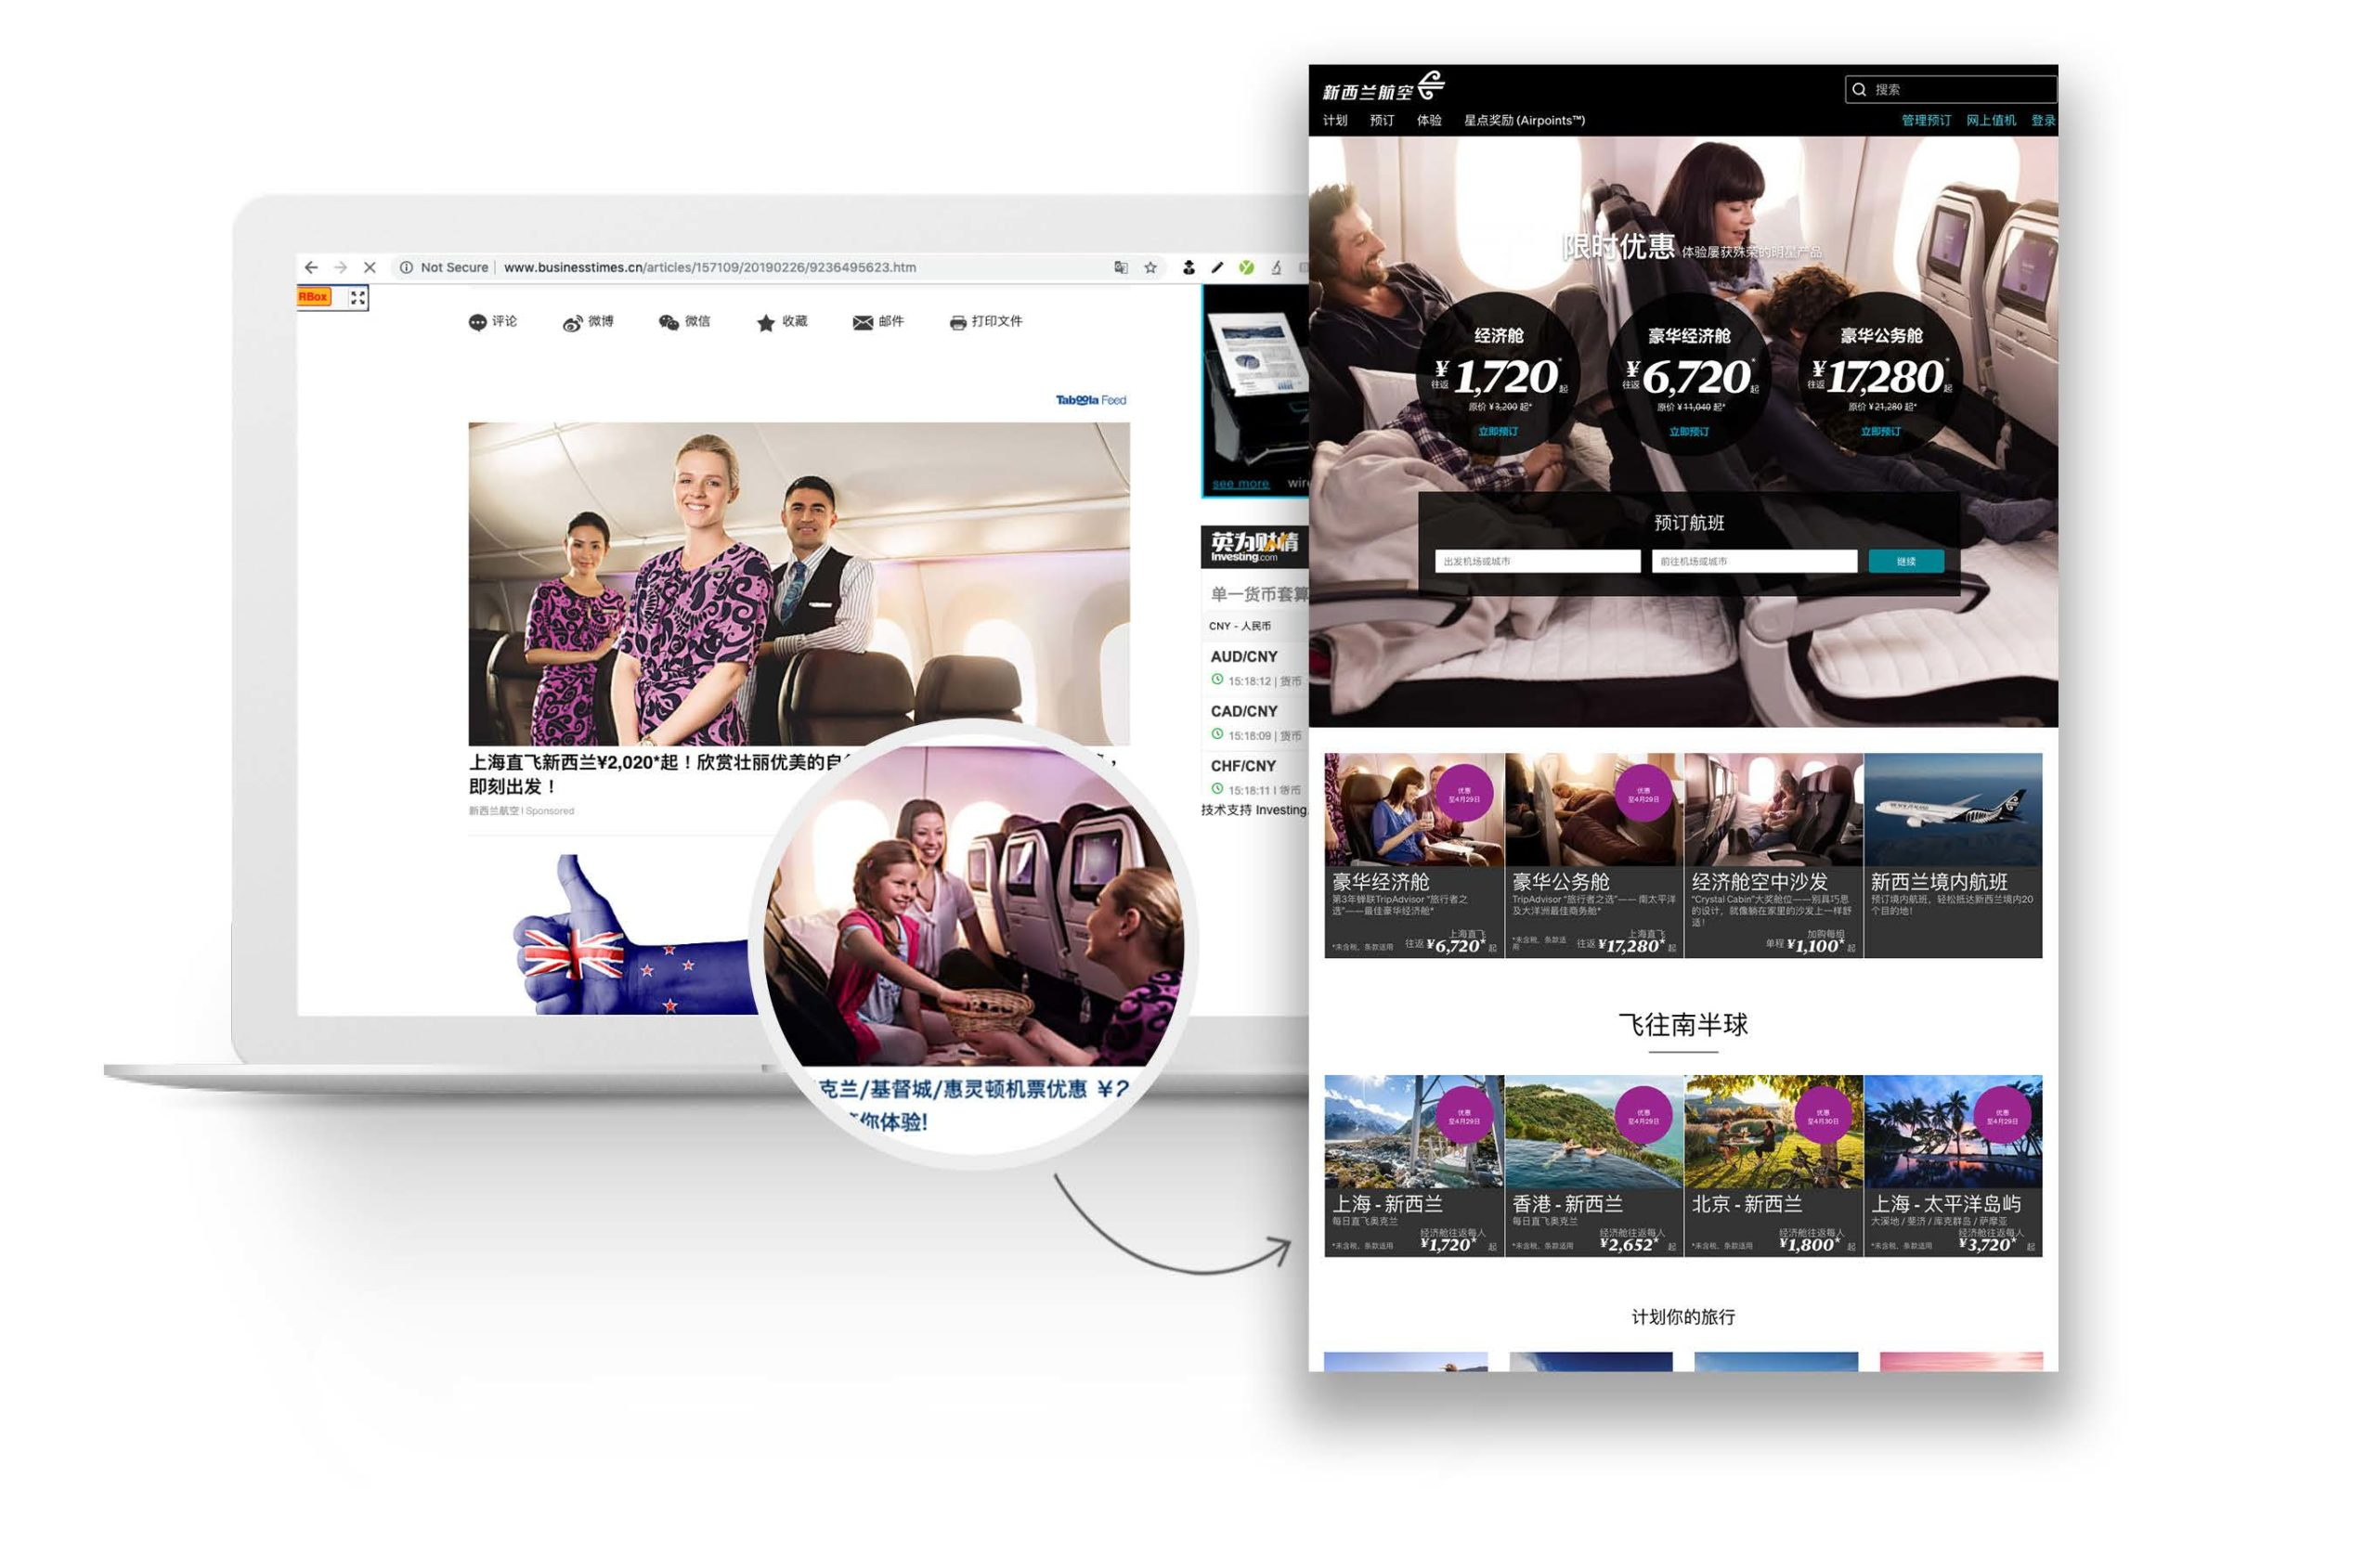 Air New Zealand China Used Taboola's Discovery Platform to Reach New Audiences at the Moment of Next